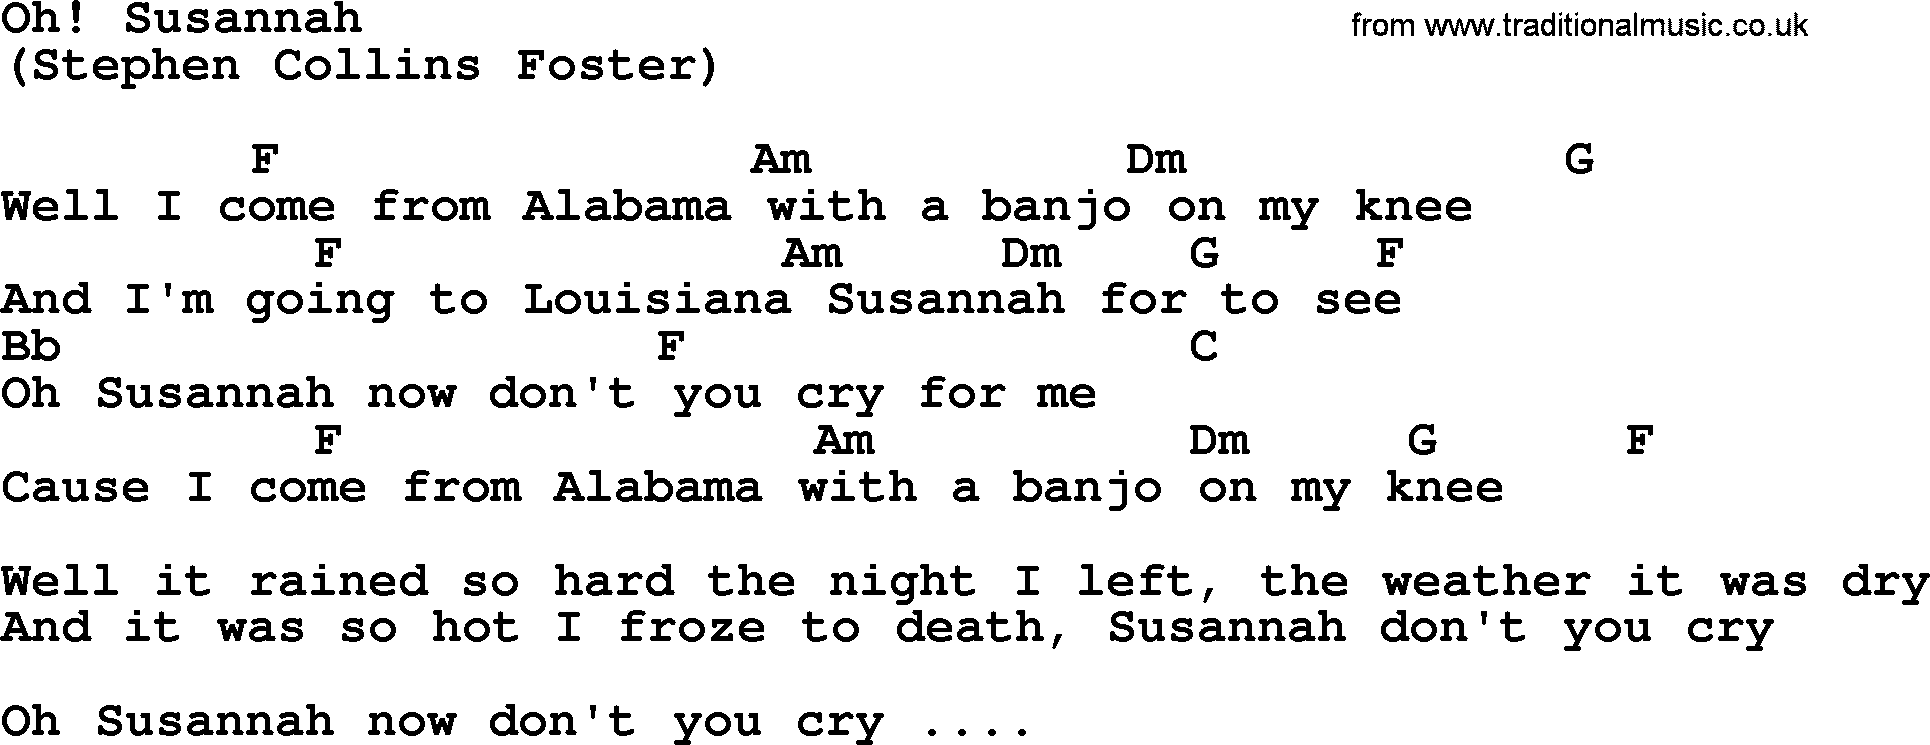 Oh Susannah By The Byrds Lyrics And Chords